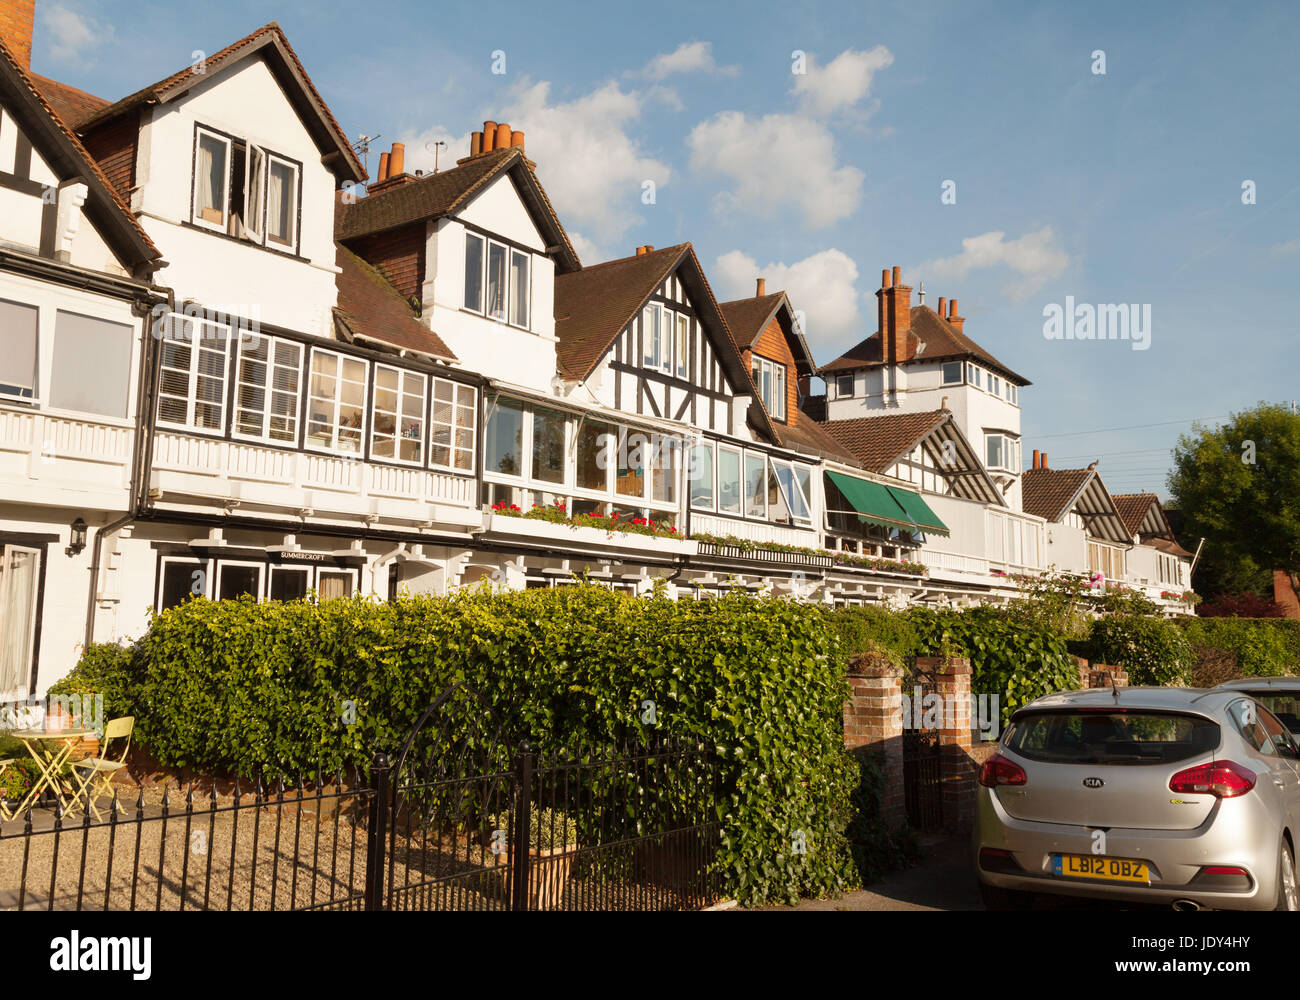 Gaiety Row - a row of terraced houses in Taplow, Buckinghamshire England UK - Stock Image